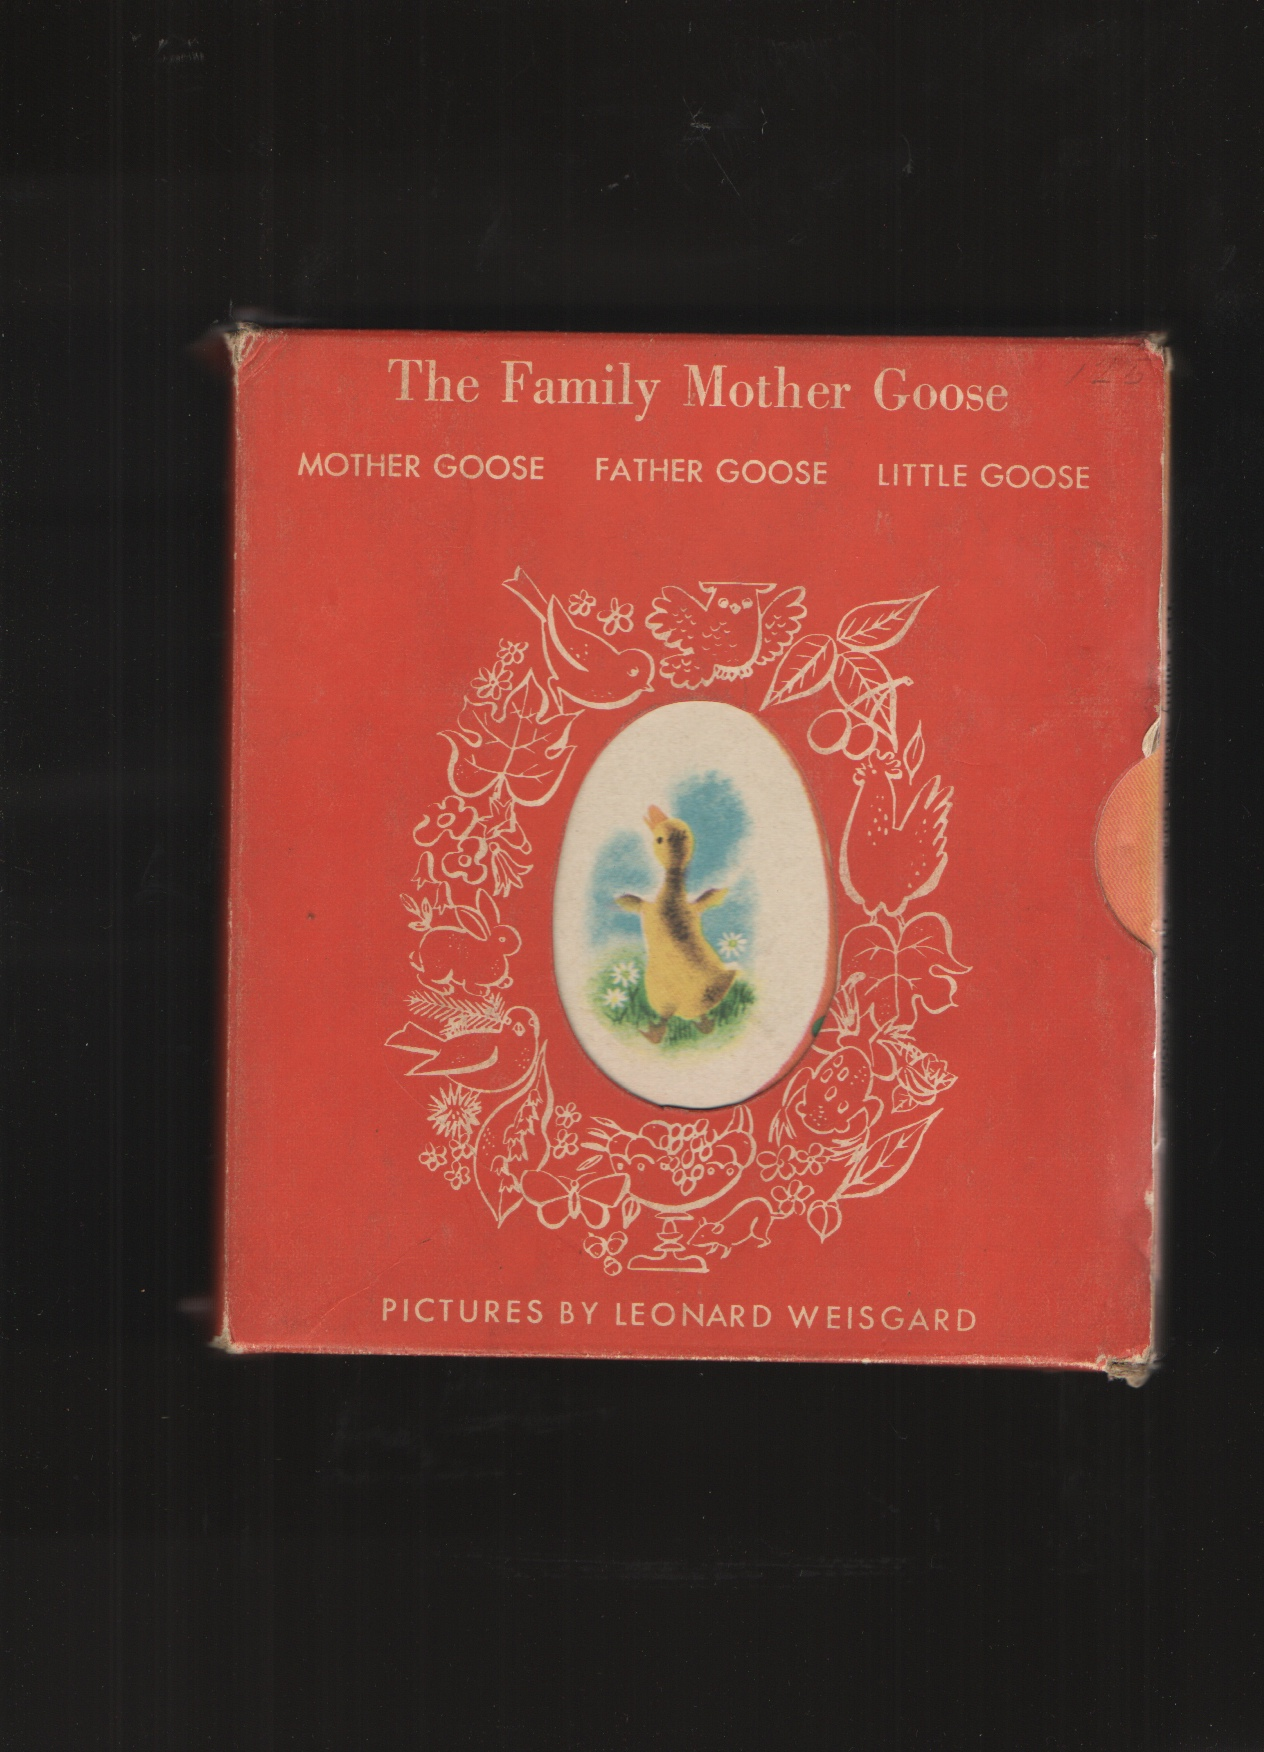 Image for The Family Mother Goose in Slipcase Little Goose, Father Goose and Mother Goose